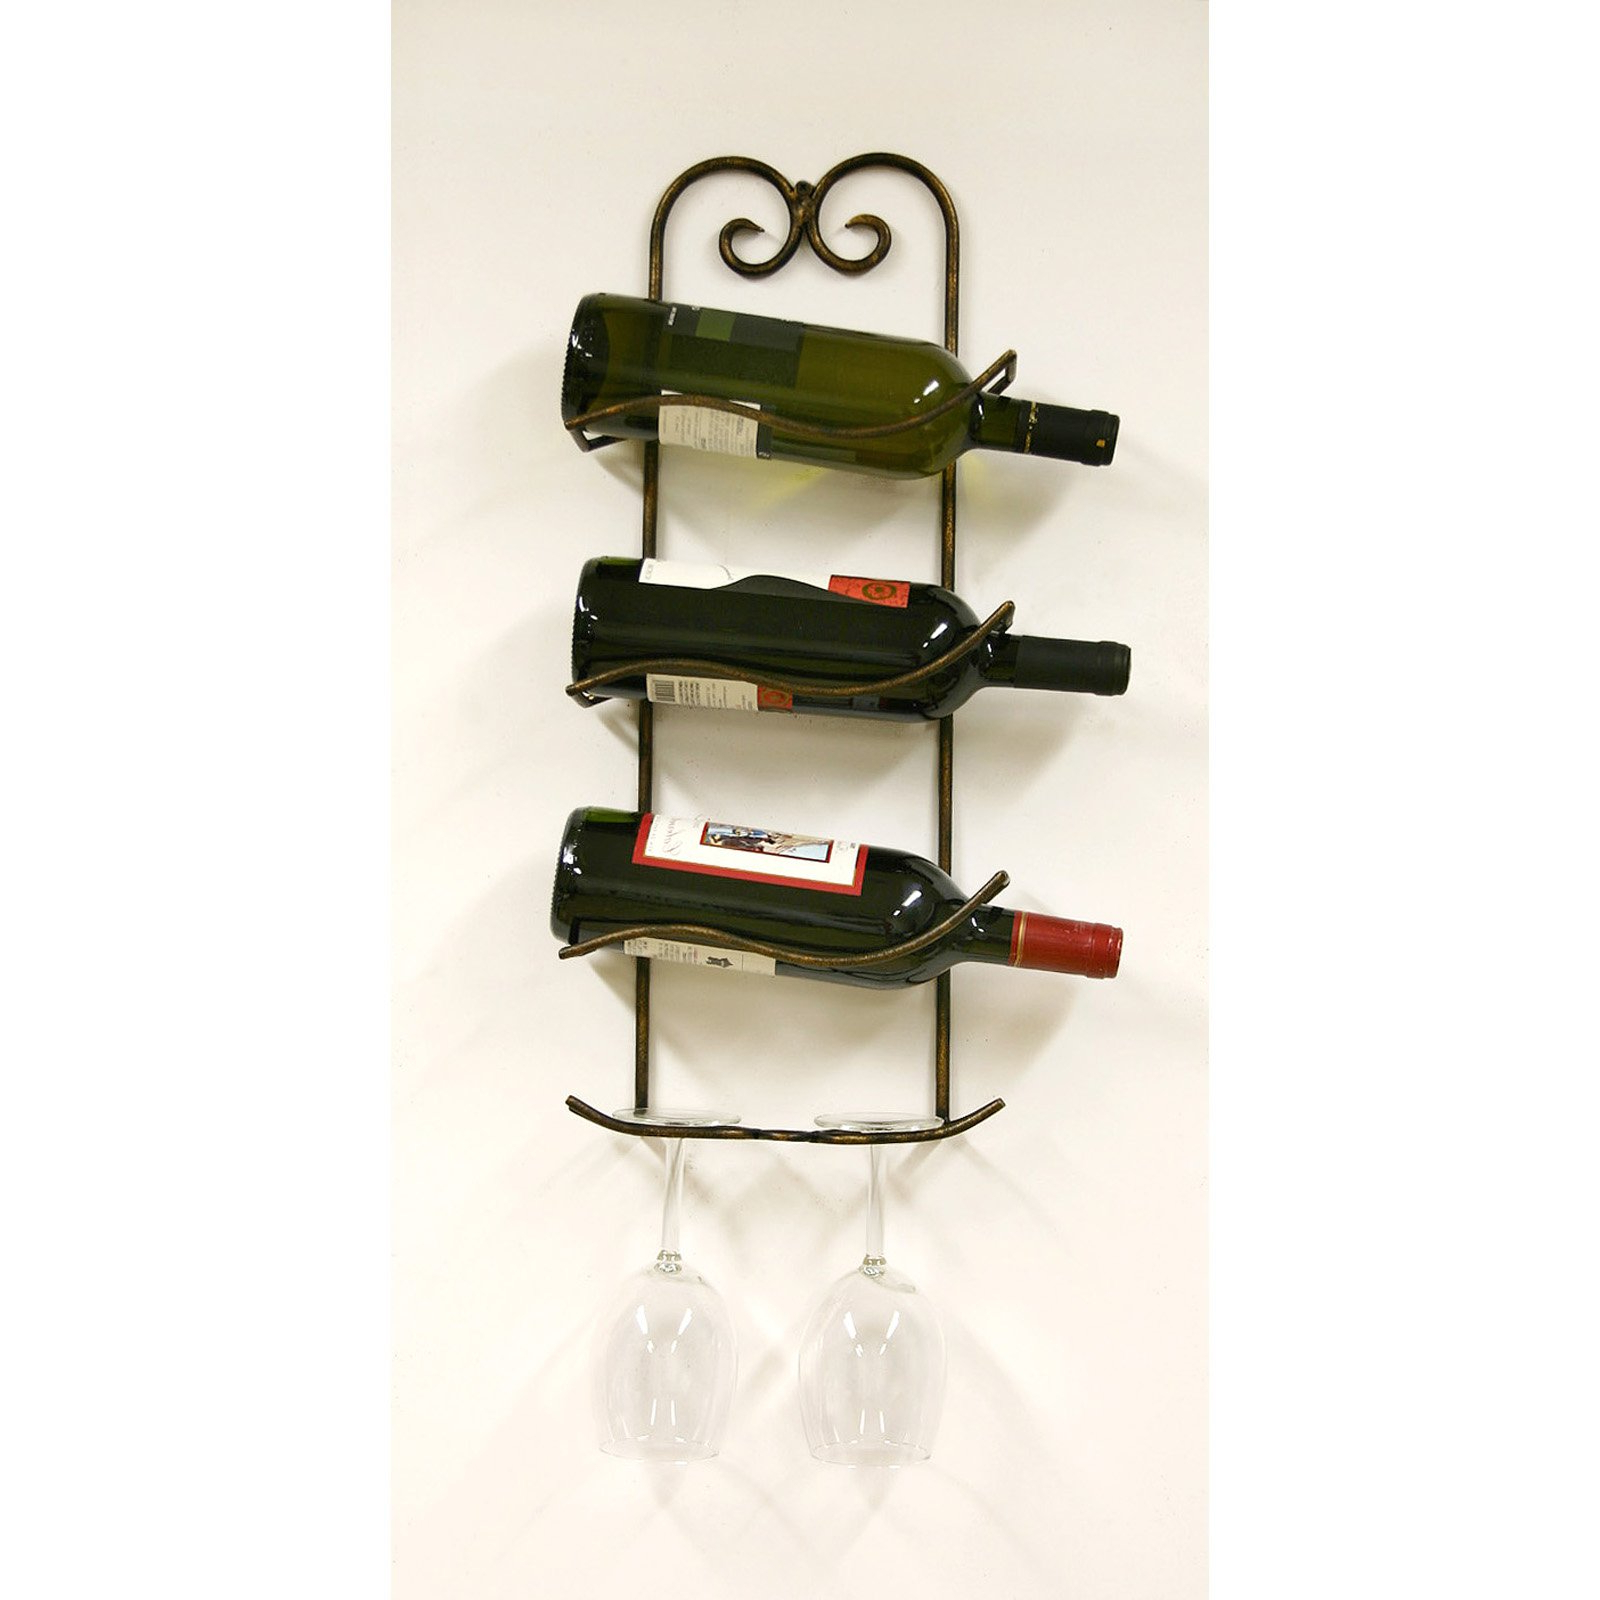 Preferred Three Glass Holder Wall Decor Regarding Regent 3 Bottle Wall Wine/glass Holder – Walmart (Gallery 5 of 20)